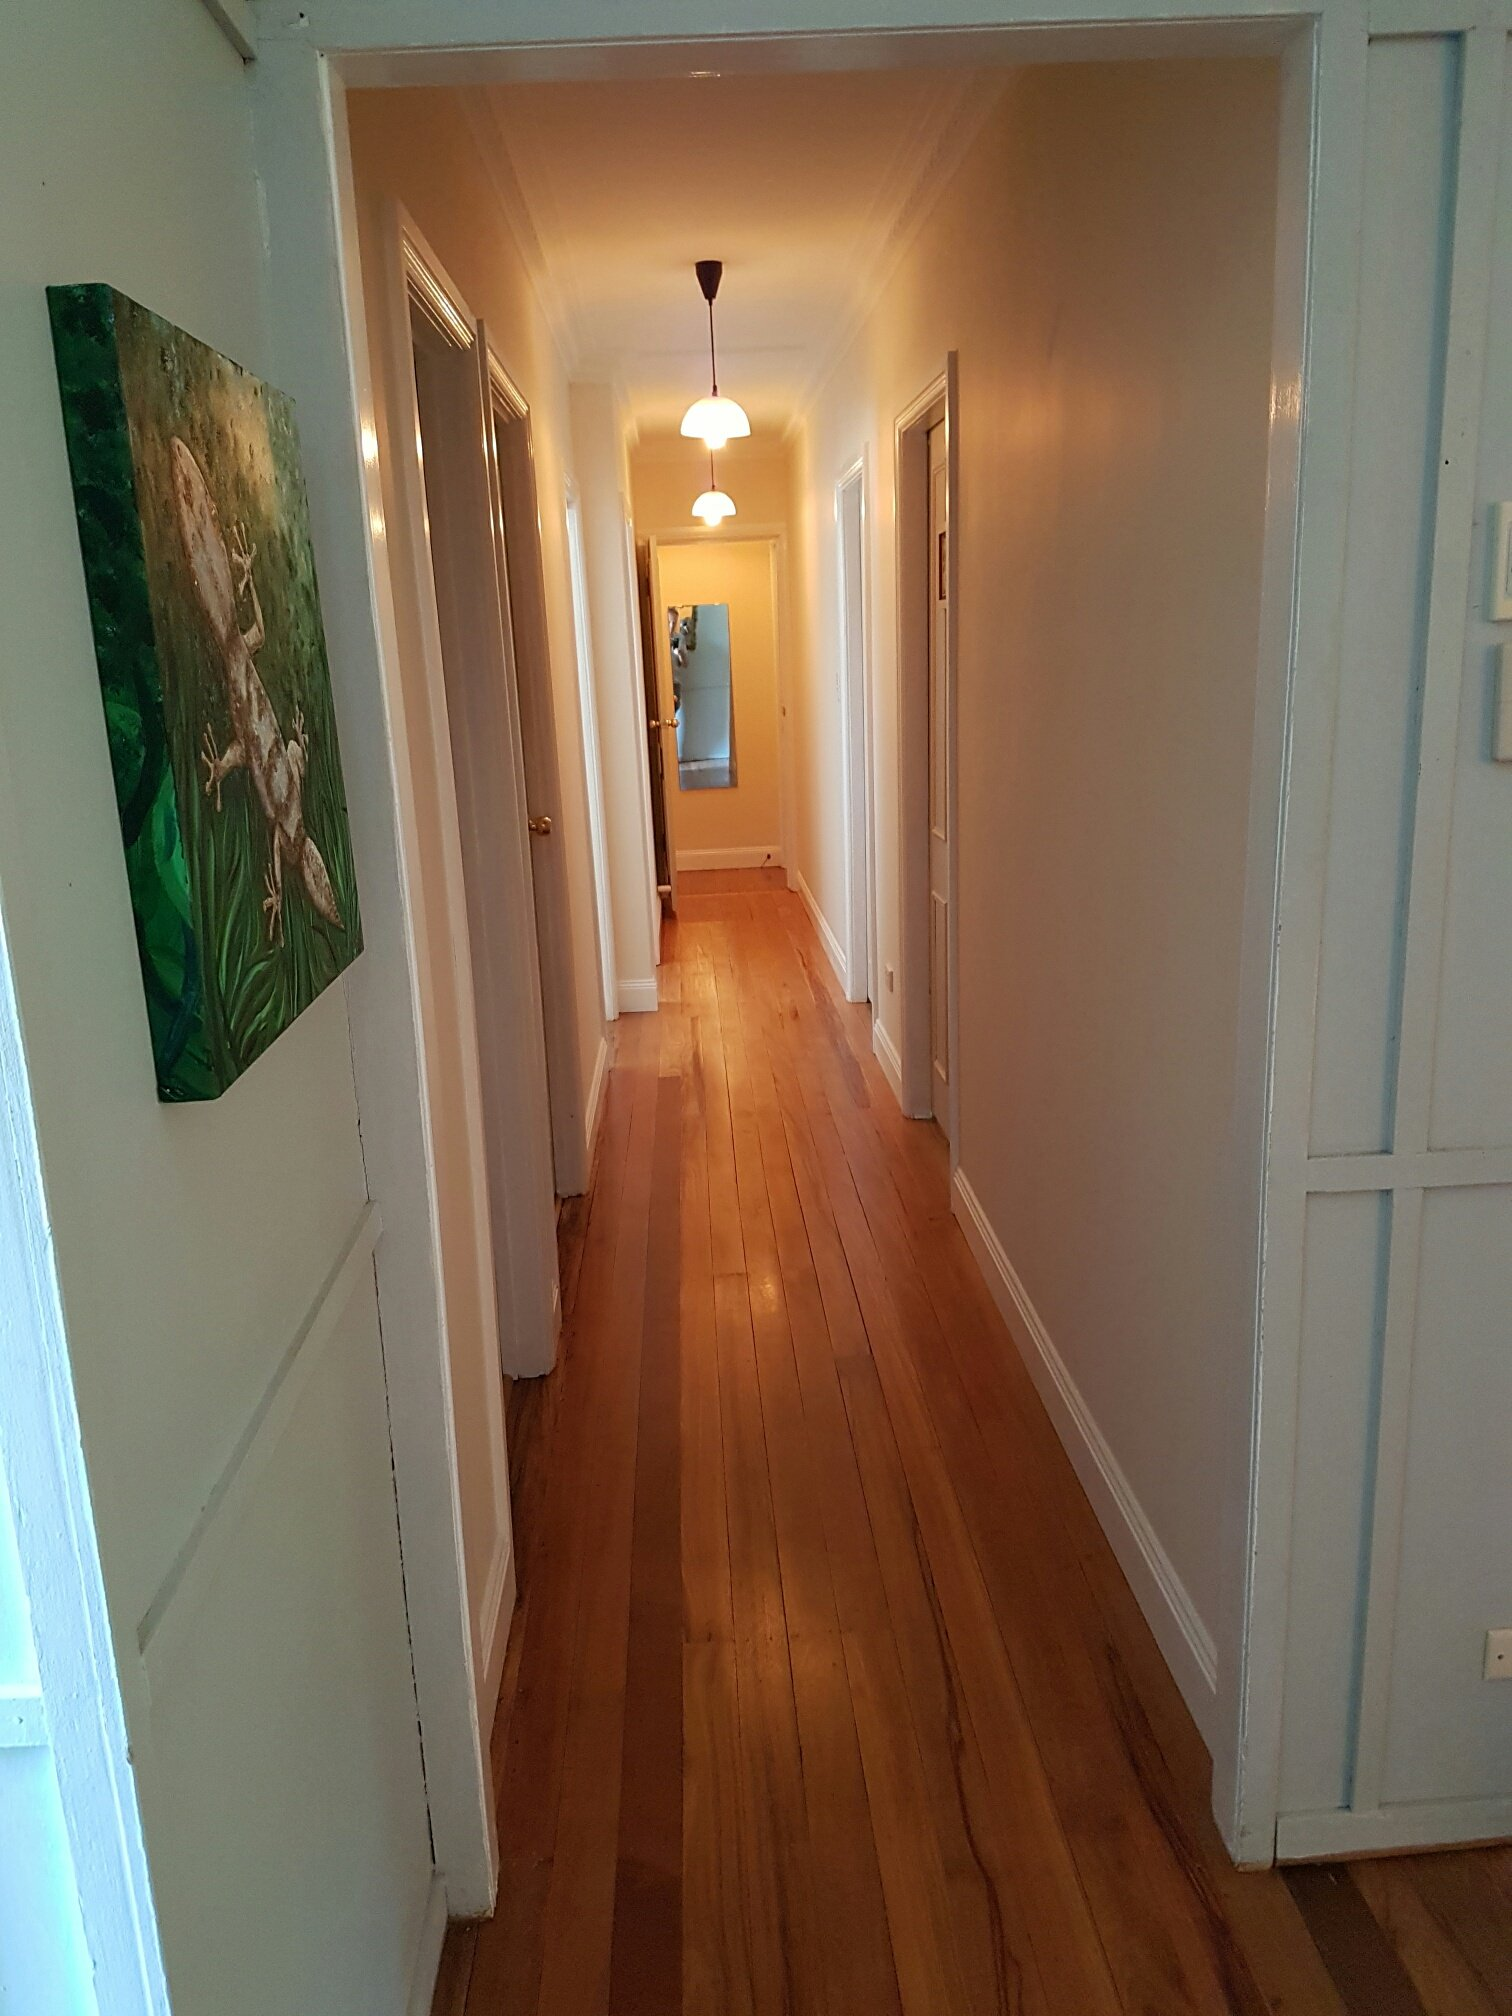 View of the hallway with wooden flooring